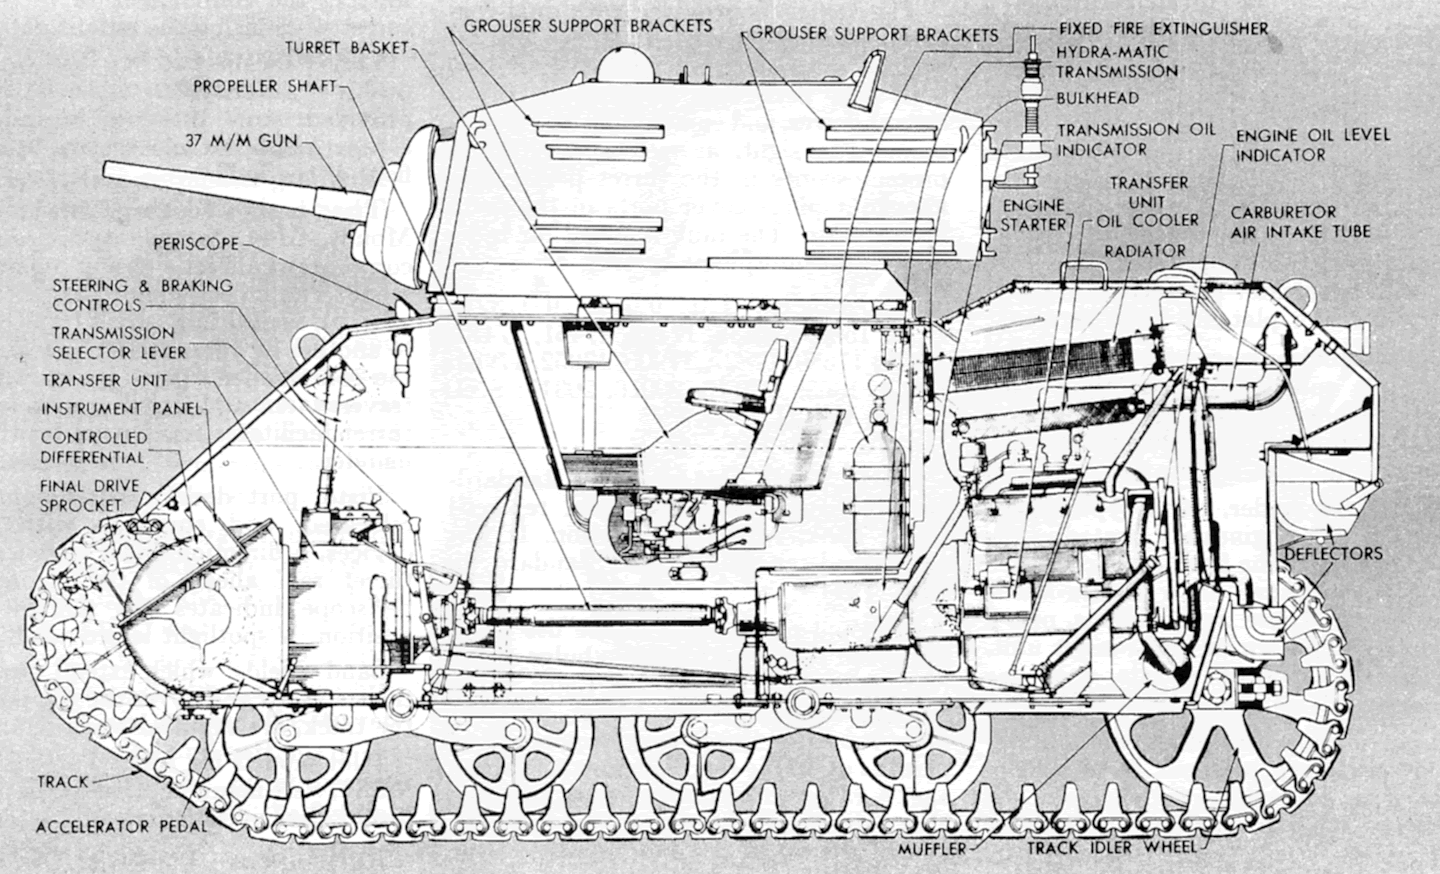 medium resolution of m5a1 light tank drawing 02 png 1440 874